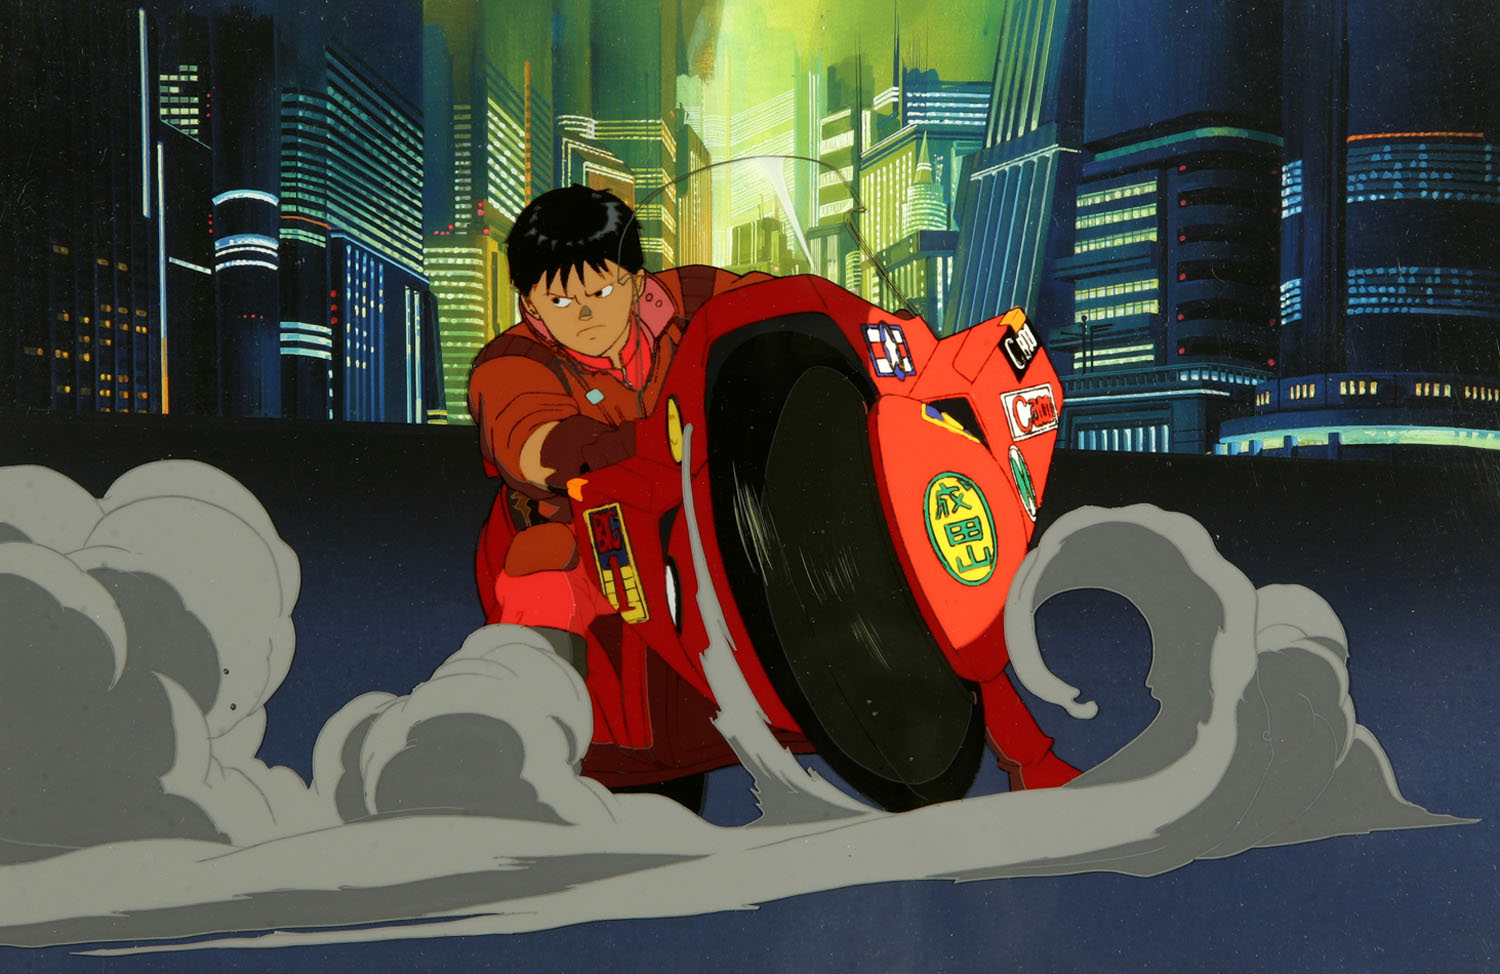 Kaneda driving motorcycle Akira 1988 animatedfilmreviews.filminspector.com